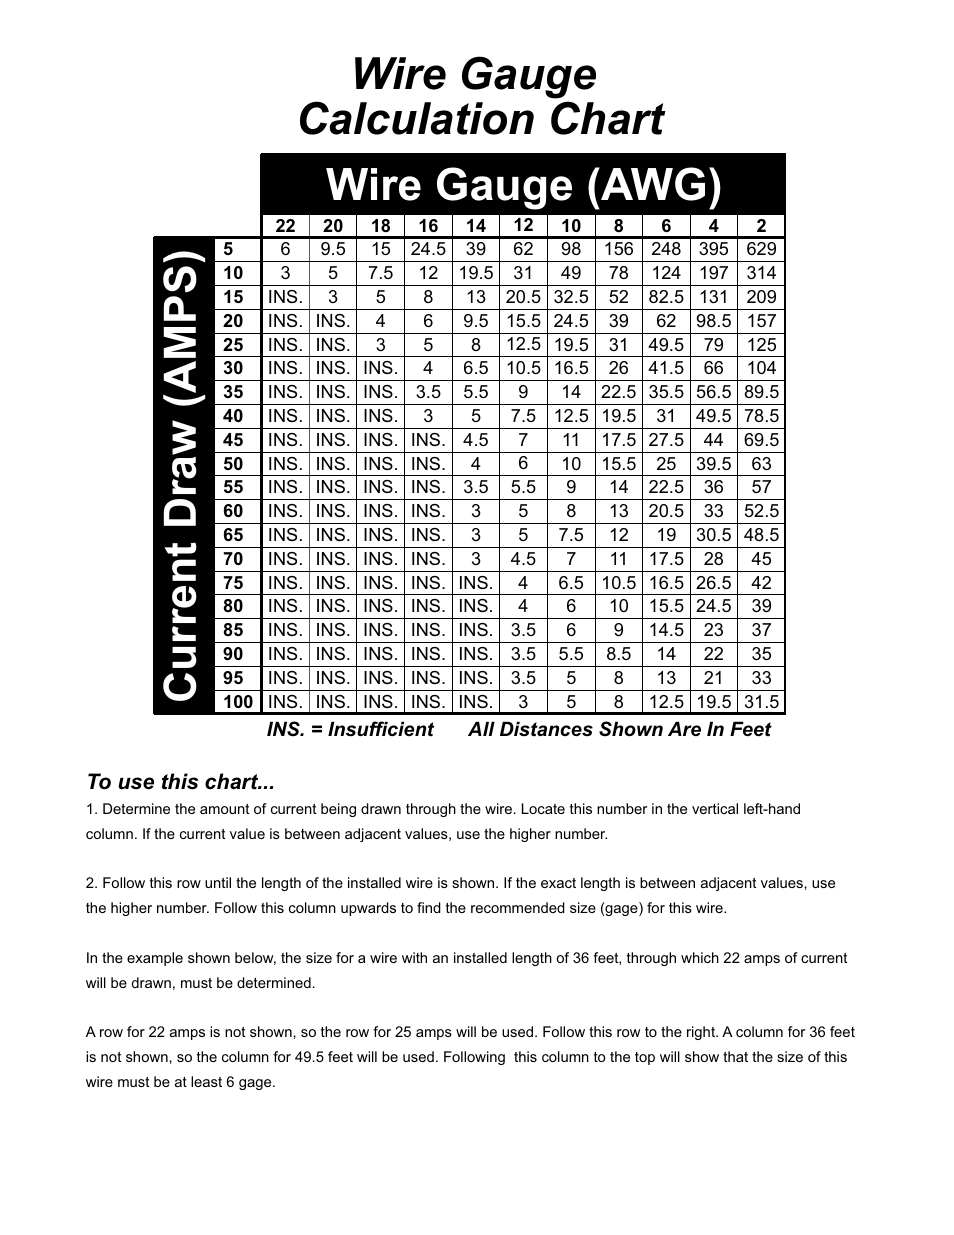 medium resolution of current draw amps wire gauge calculation chart wire gauge awg